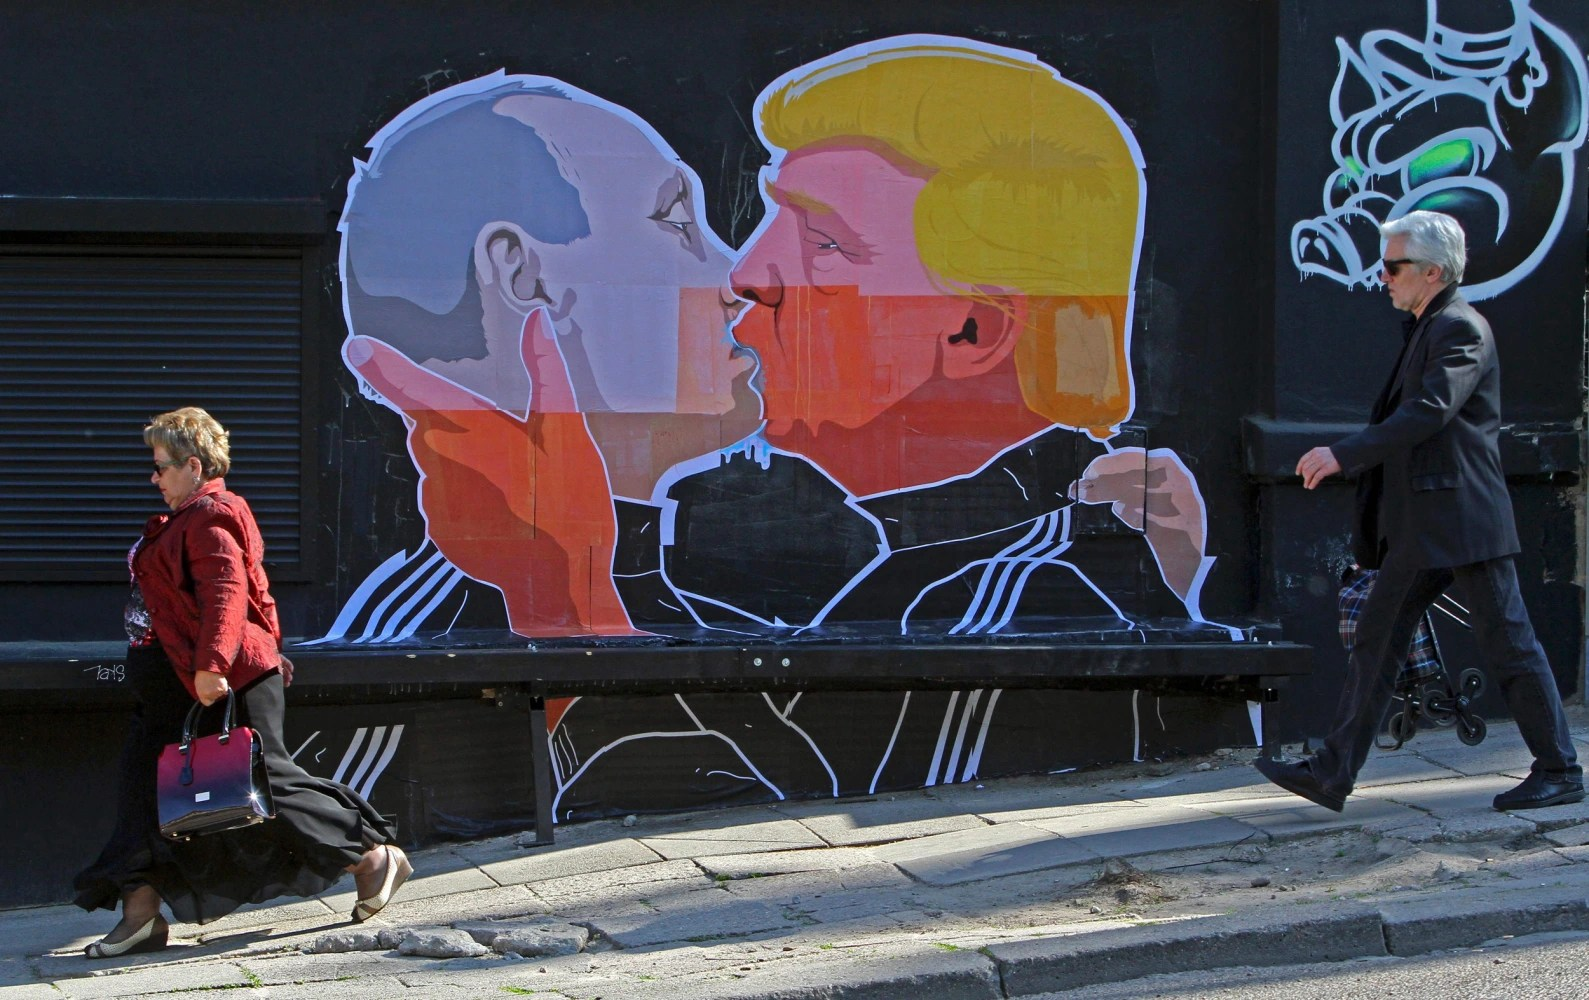 https://i0.wp.com/media1.s-nbcnews.com/j/newscms/2016_31/1648256/160801-trump-putin-kissing-mbe-445p_2243b5f340e83461b265385fa5005243.nbcnews-ux-2880-1000.jpg